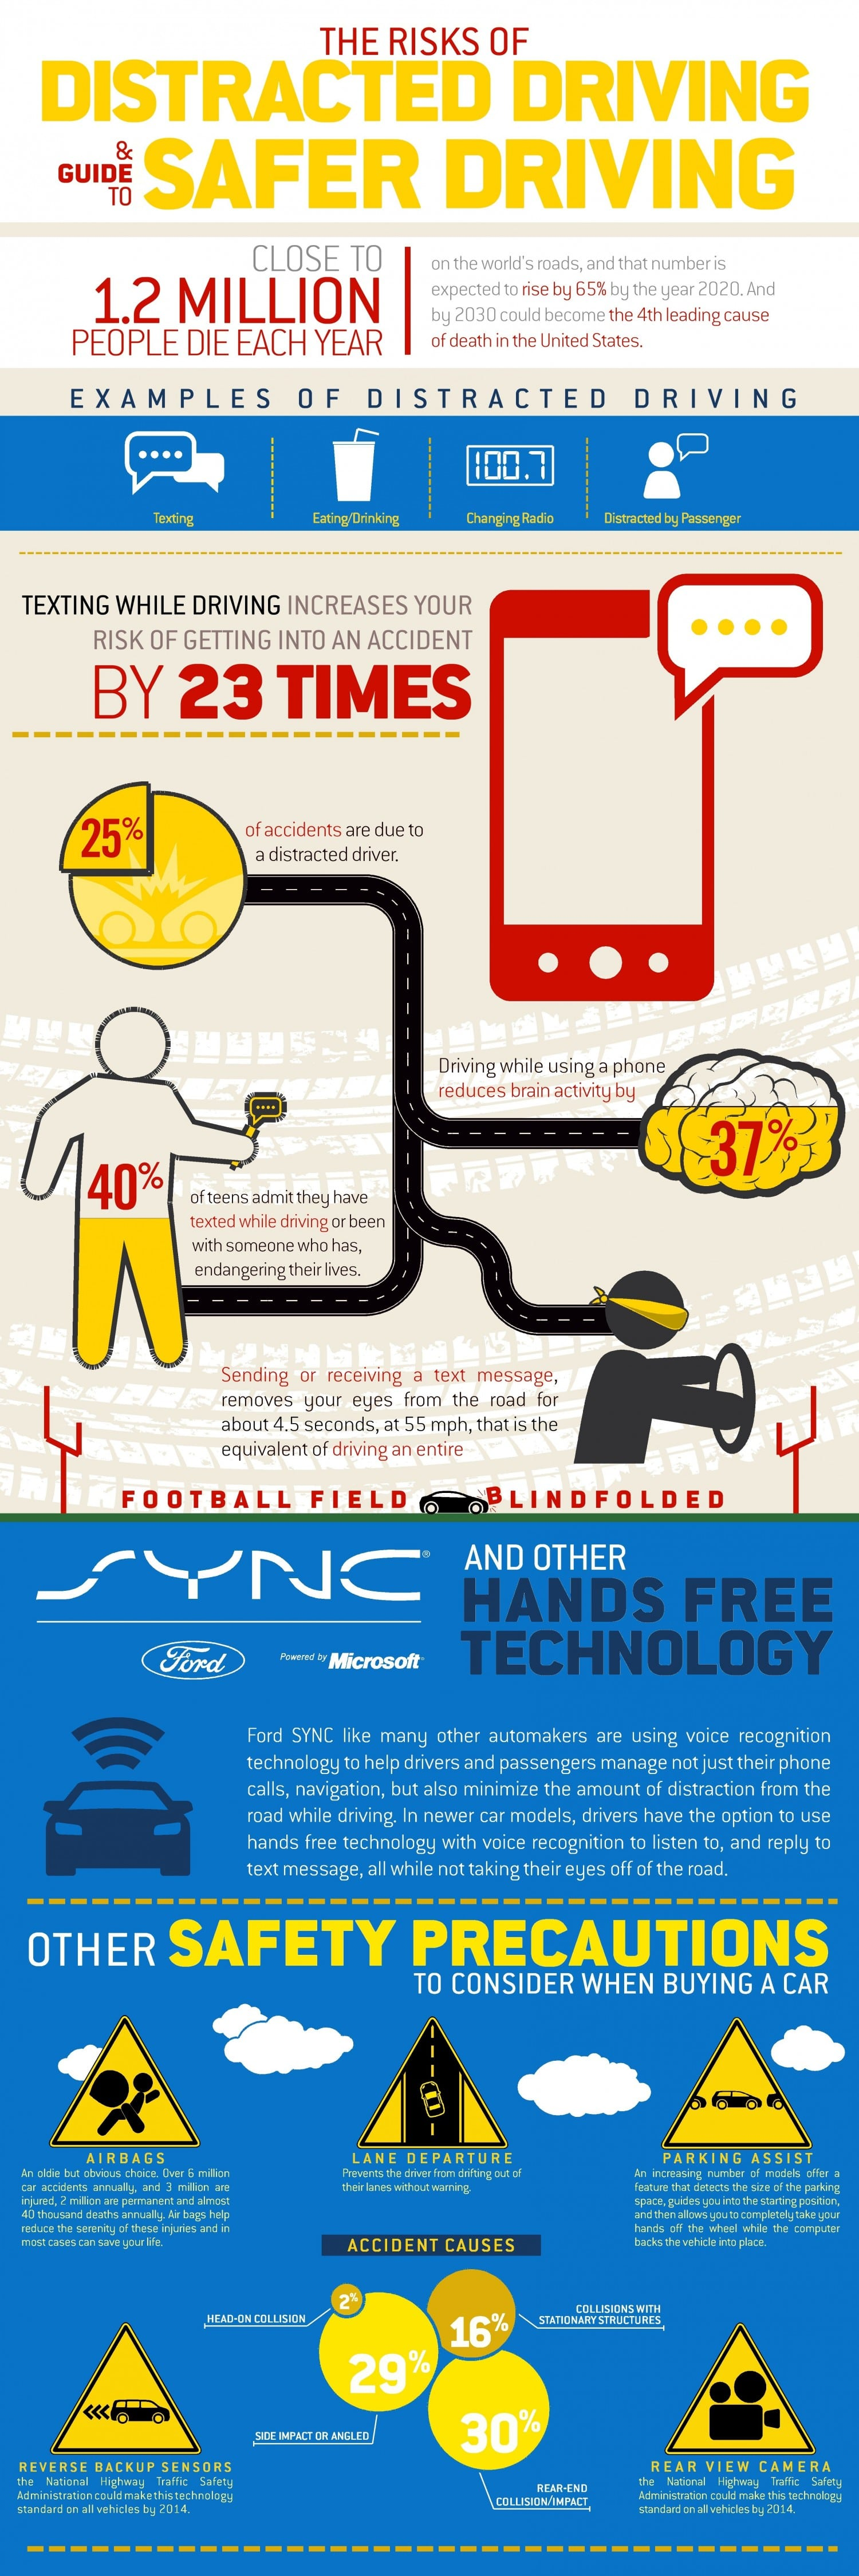 Risks of Distracted Driving and guide for safer driving